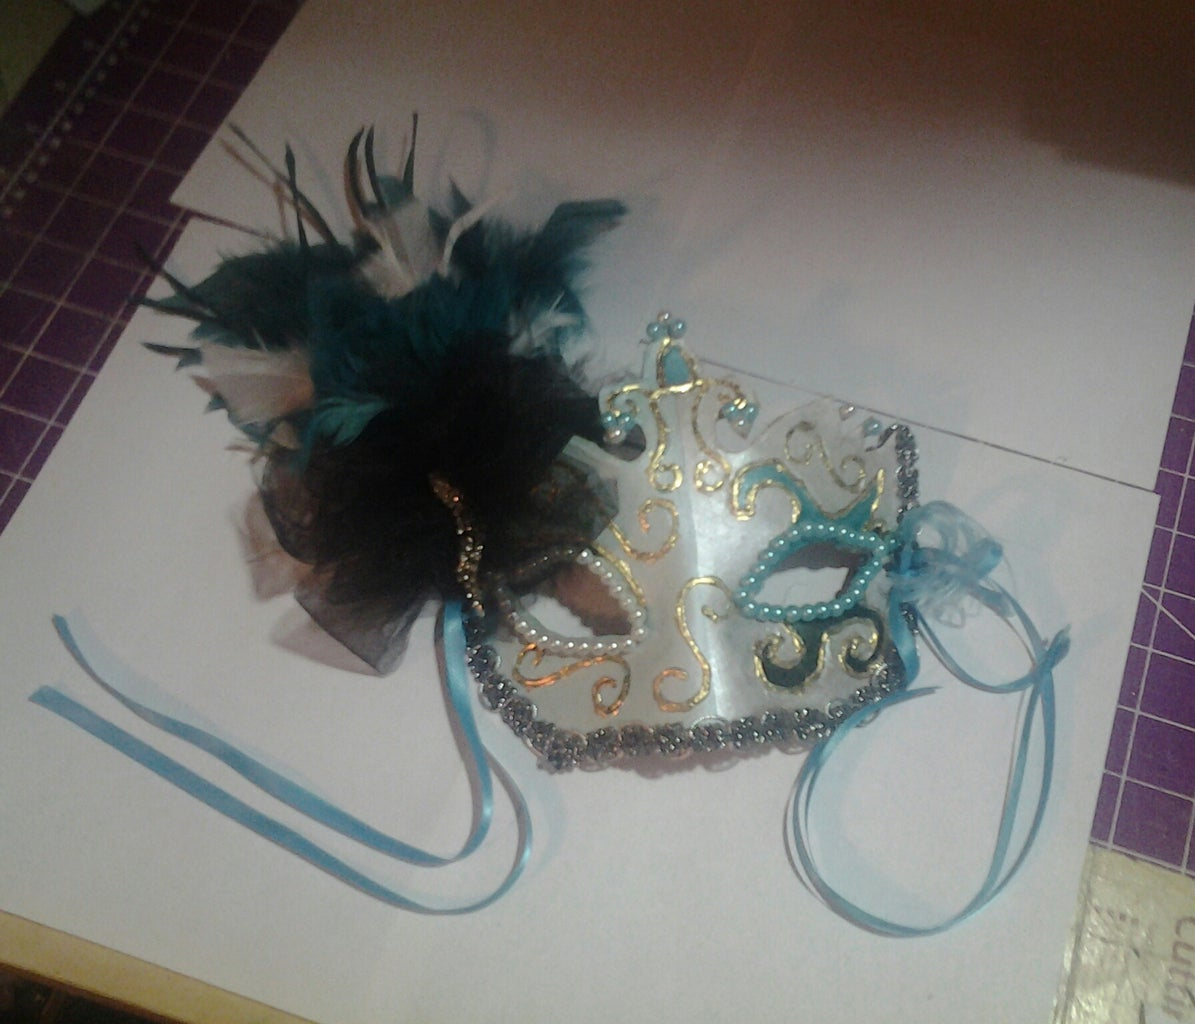 Finished Terrific in Teal Masquerade Mask!